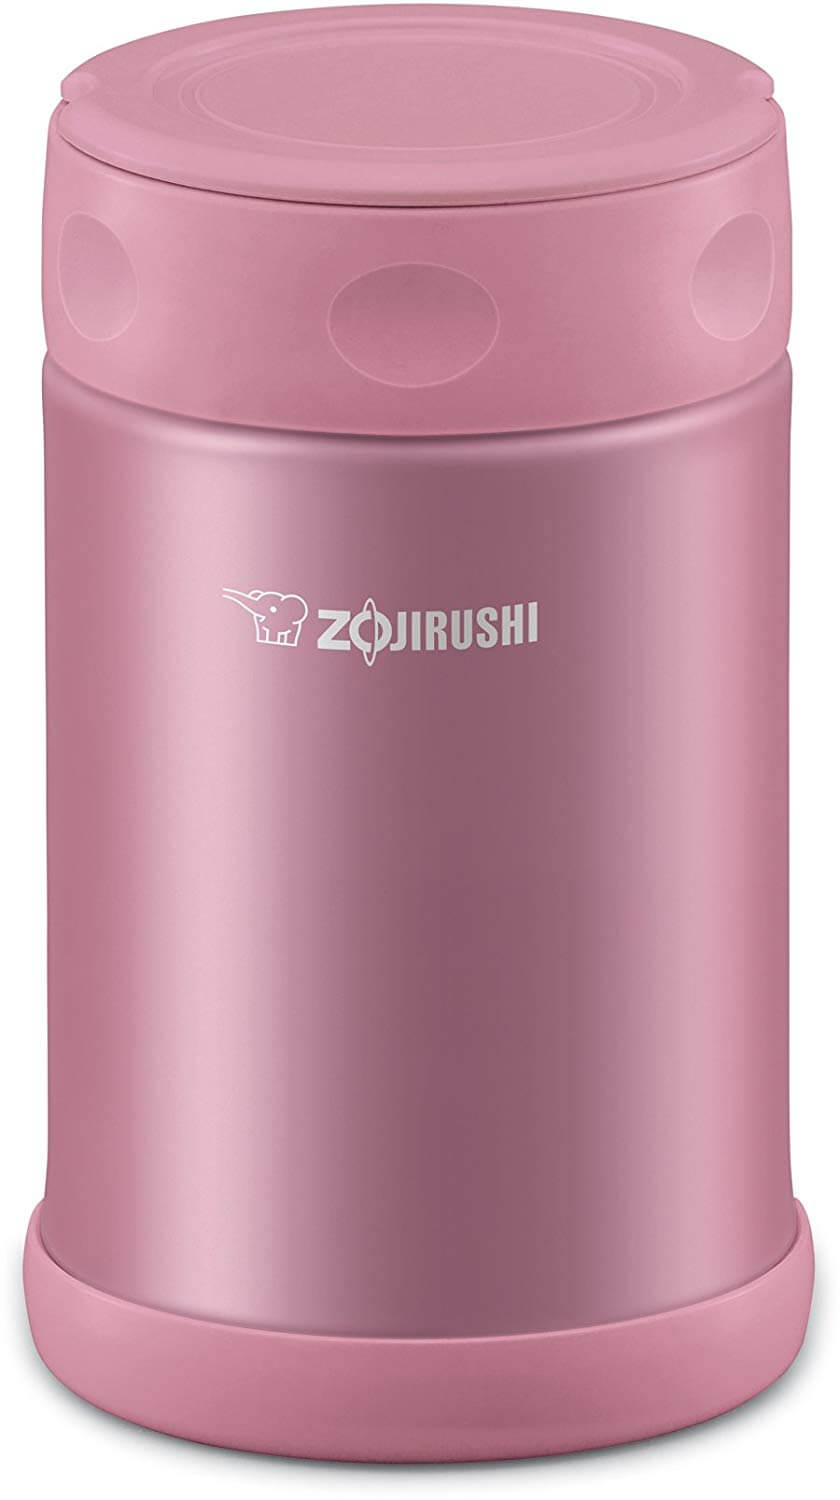 Zojirushi SW-EAE50PS 16.9 Oz Food Jar